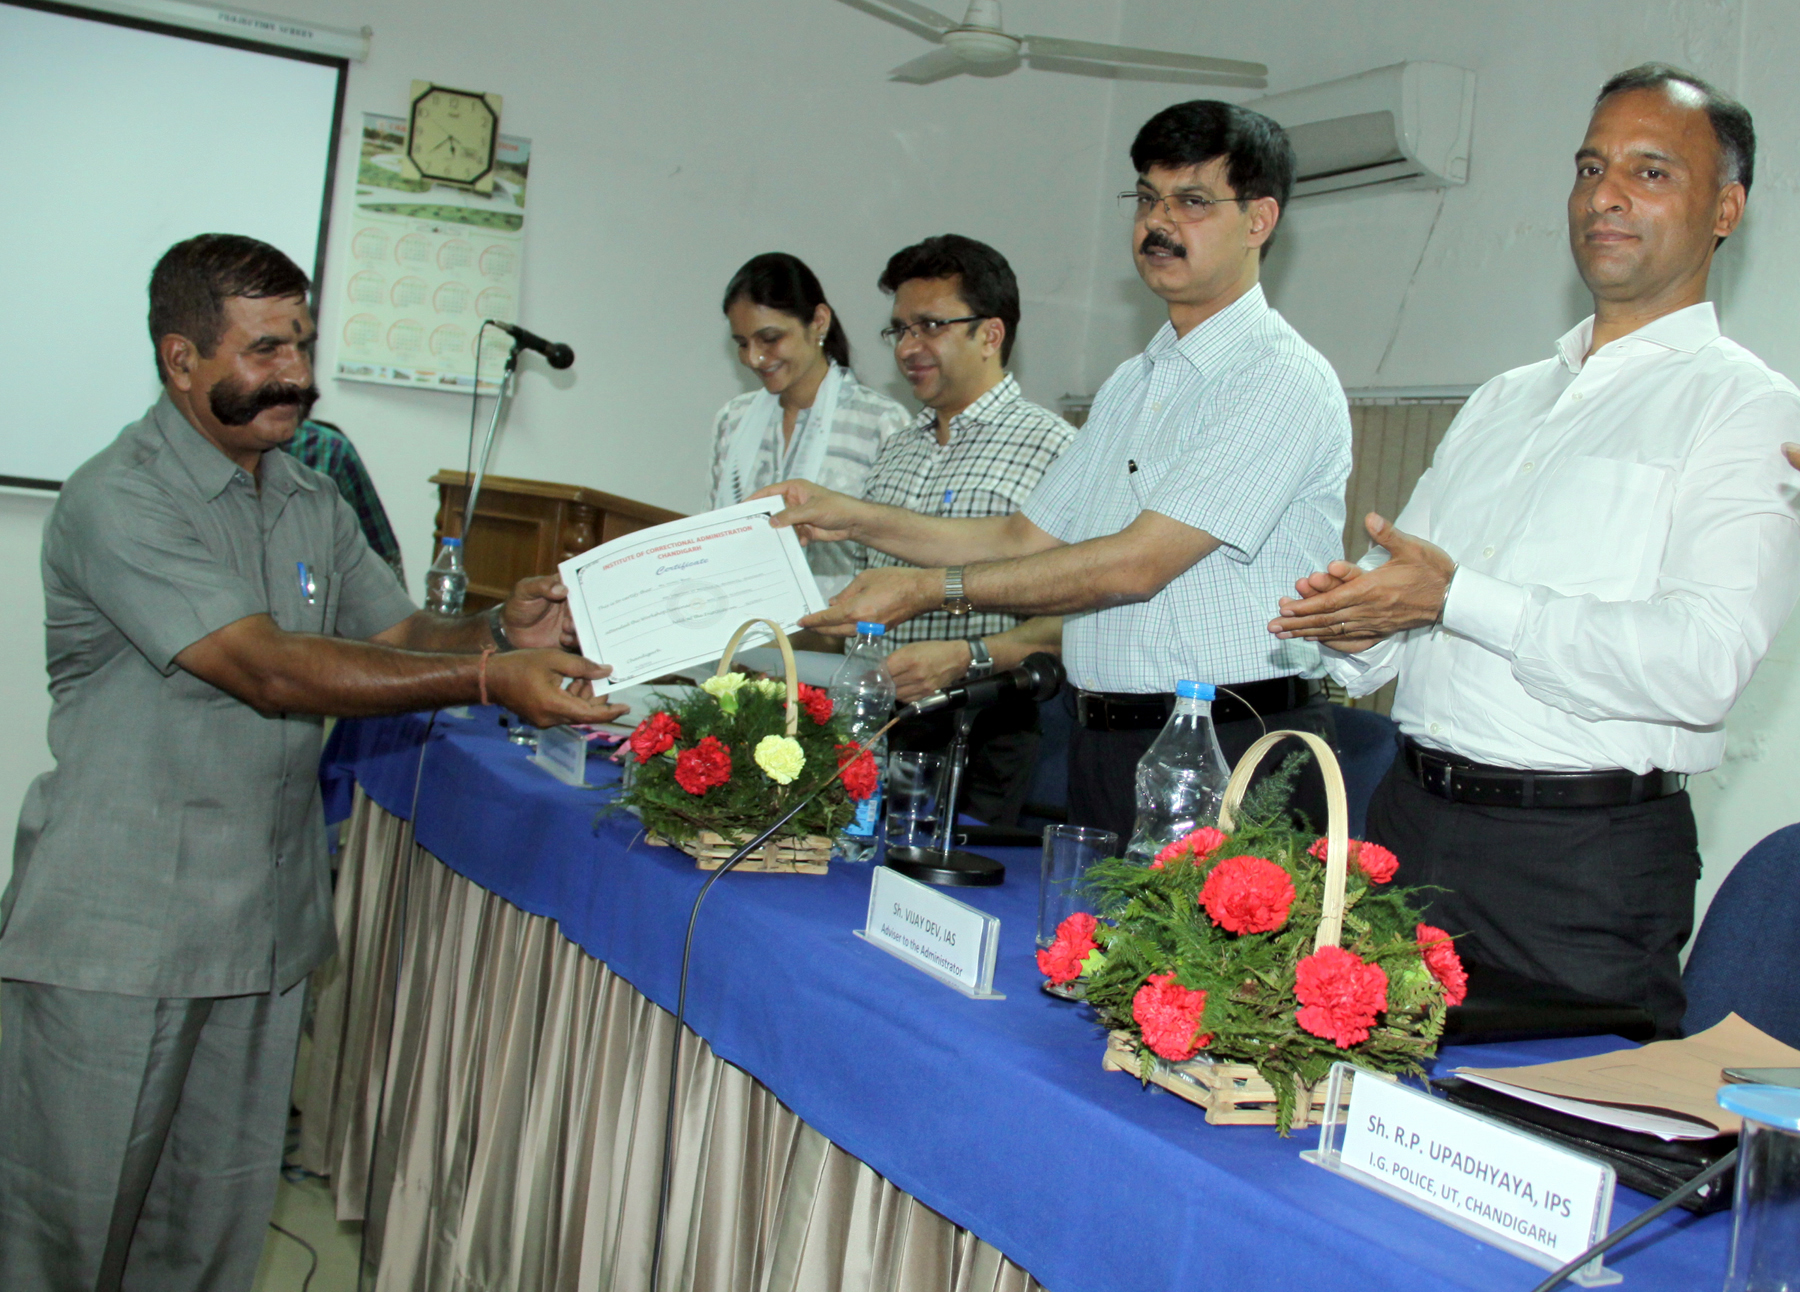 Shri Anant Kumar Singh, IAS, Additional Secretary (CS), Government of India, Ministry of Home Affairs, New Delhi distributing certificates to the participants in the one day workshop on ANTI HUMAN TRAFFICKING at Regional Institute of Correctional Administration at Sector-26, Chandigarh on Friday, July 03, 2015.